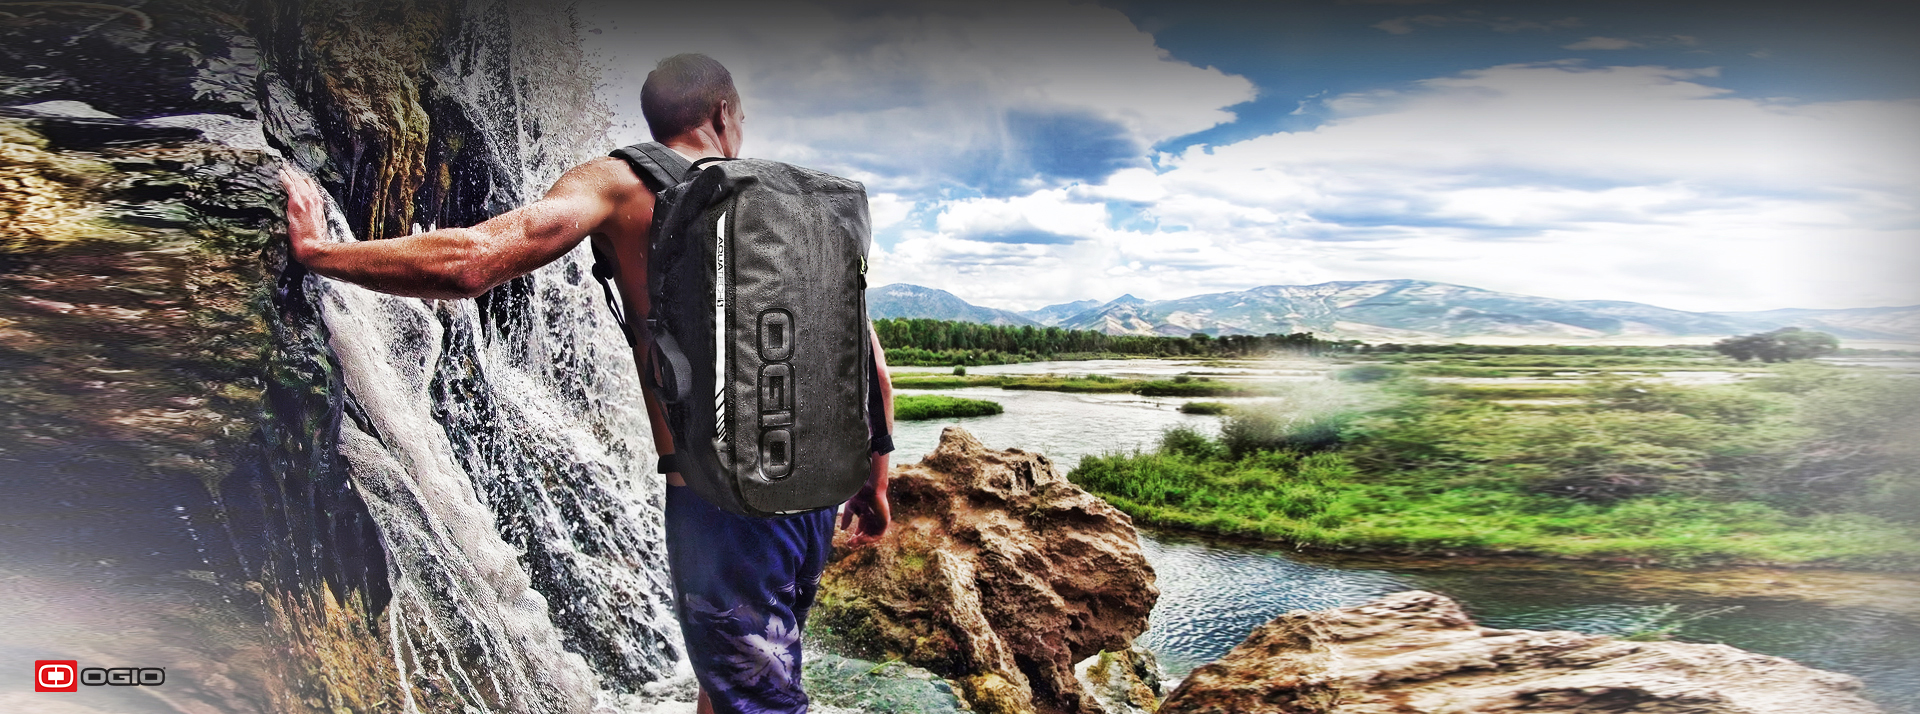 Ogio - wypad na weekend